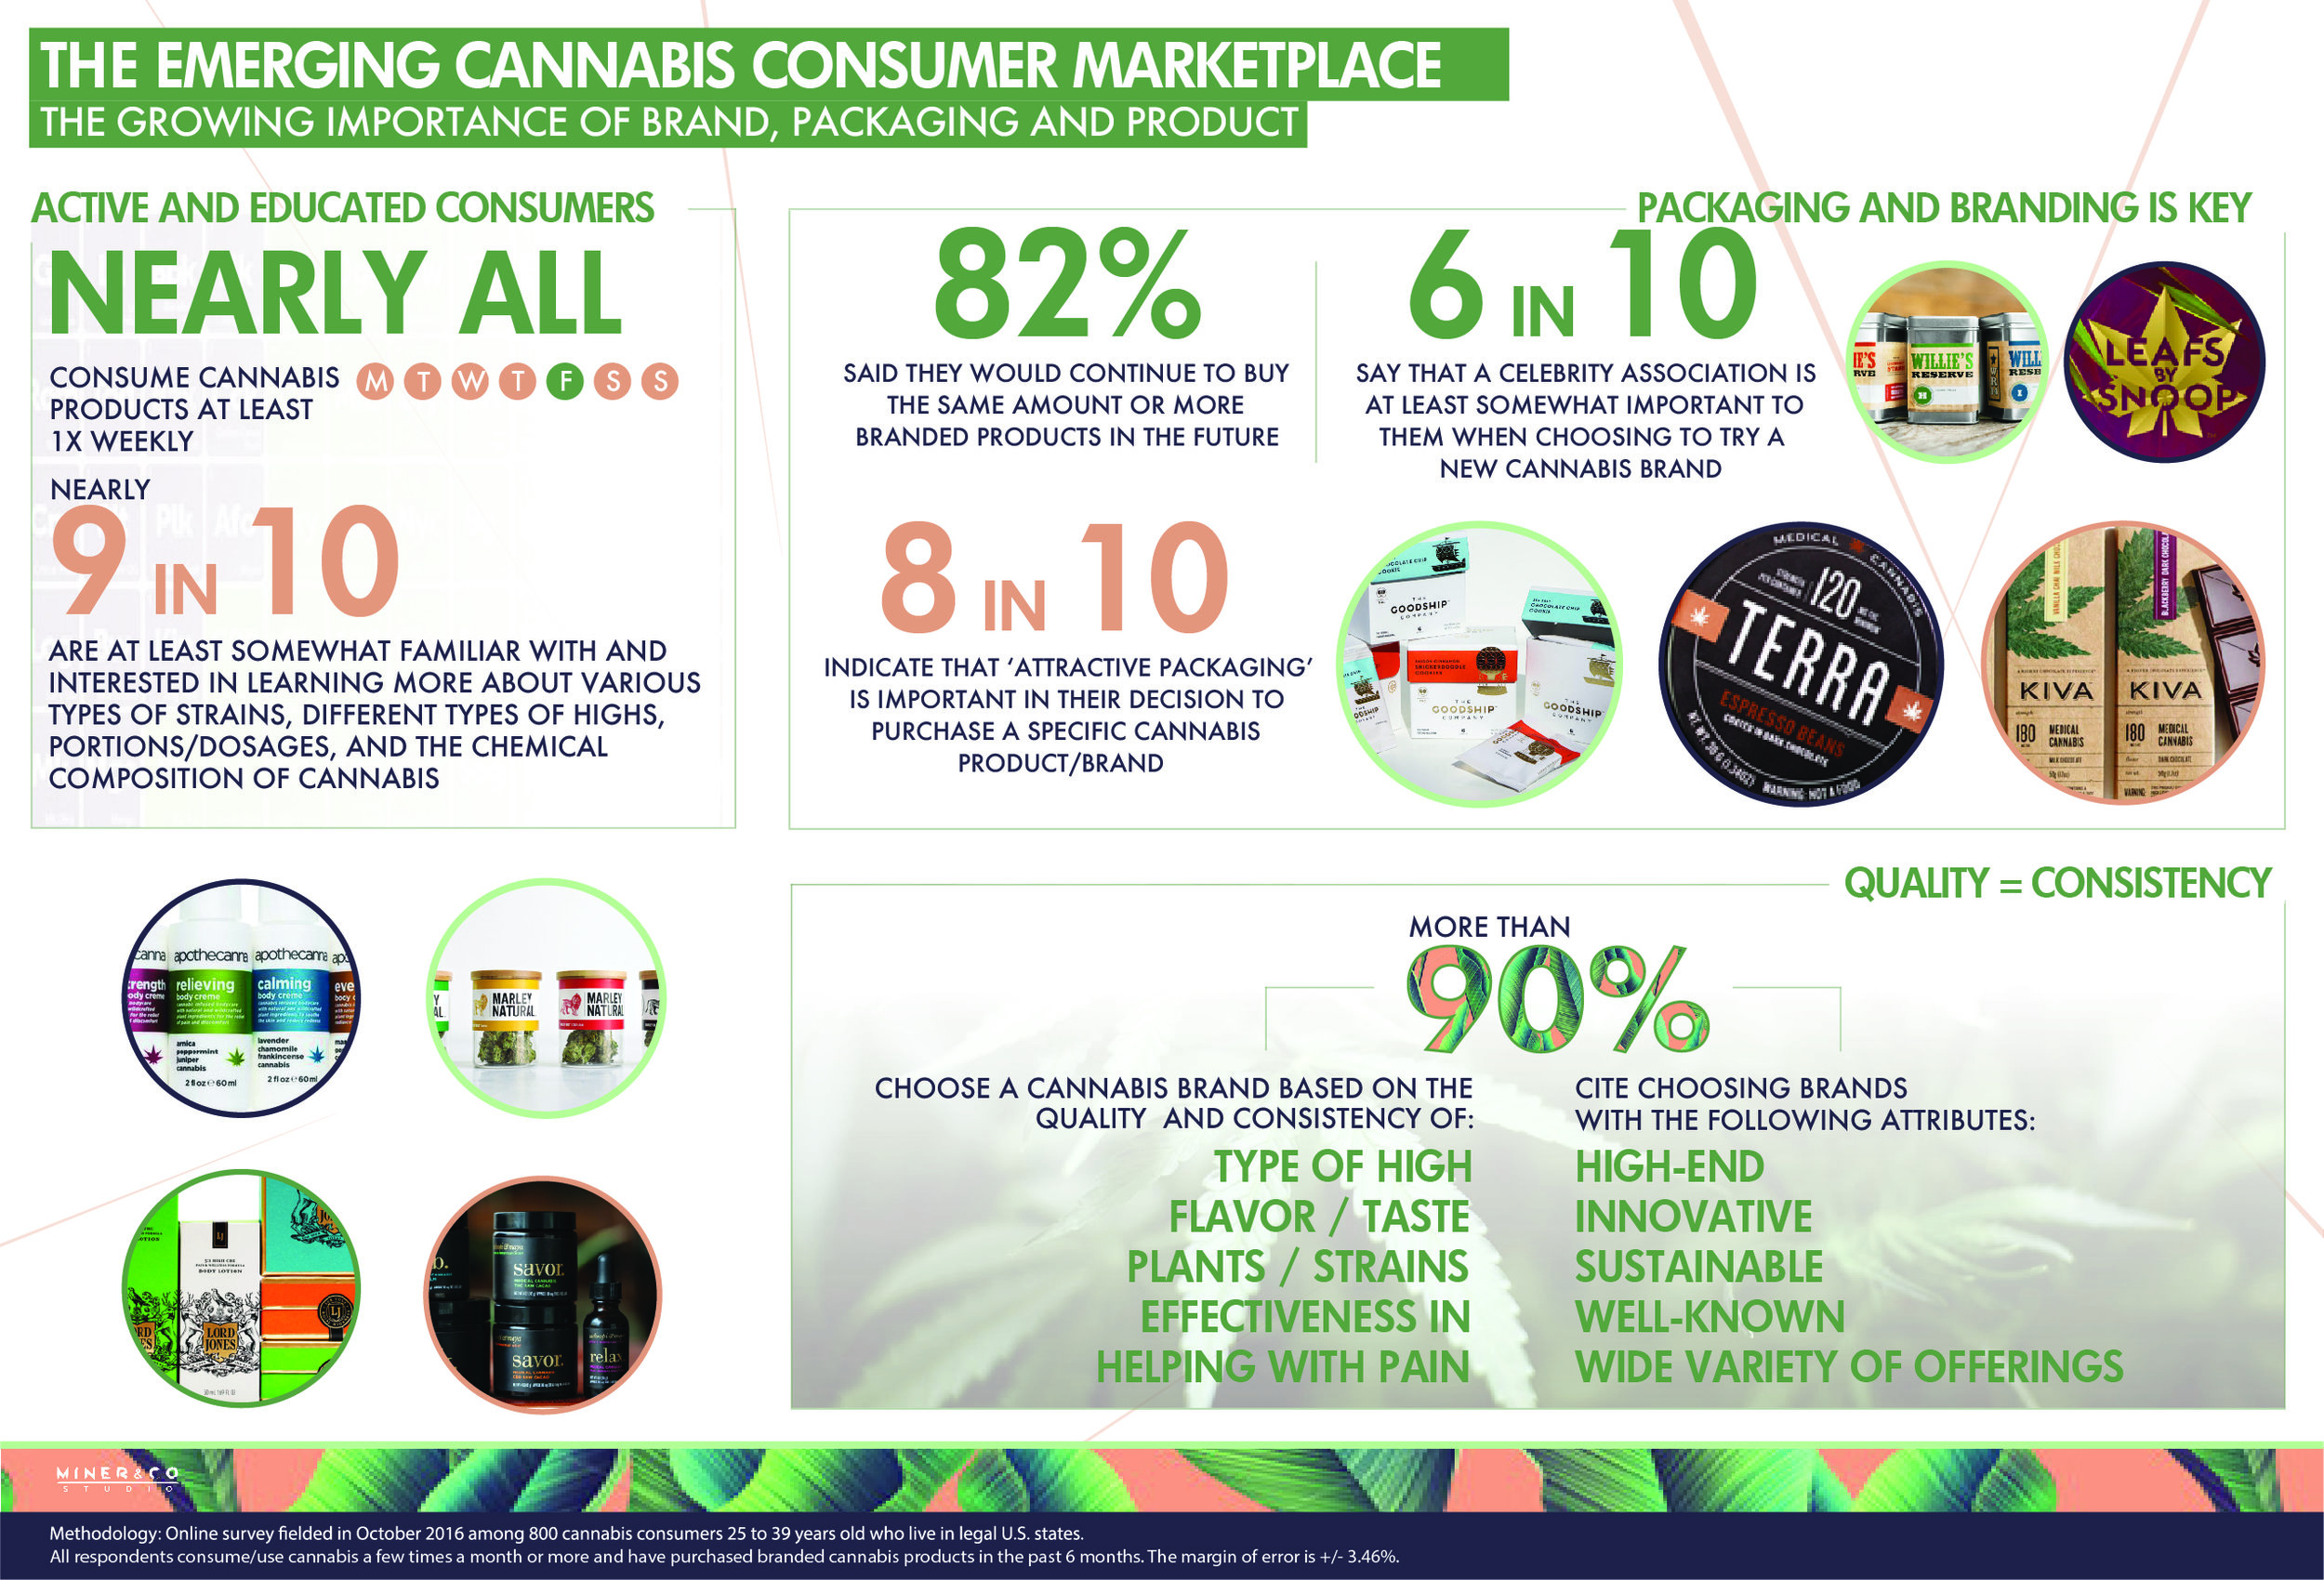 With 93% consuming cannabis at least once a week, cannabis consumers surveyed are actively shopping and open to trying new products. The importance of good  branding and packaging  is now quickly growing.